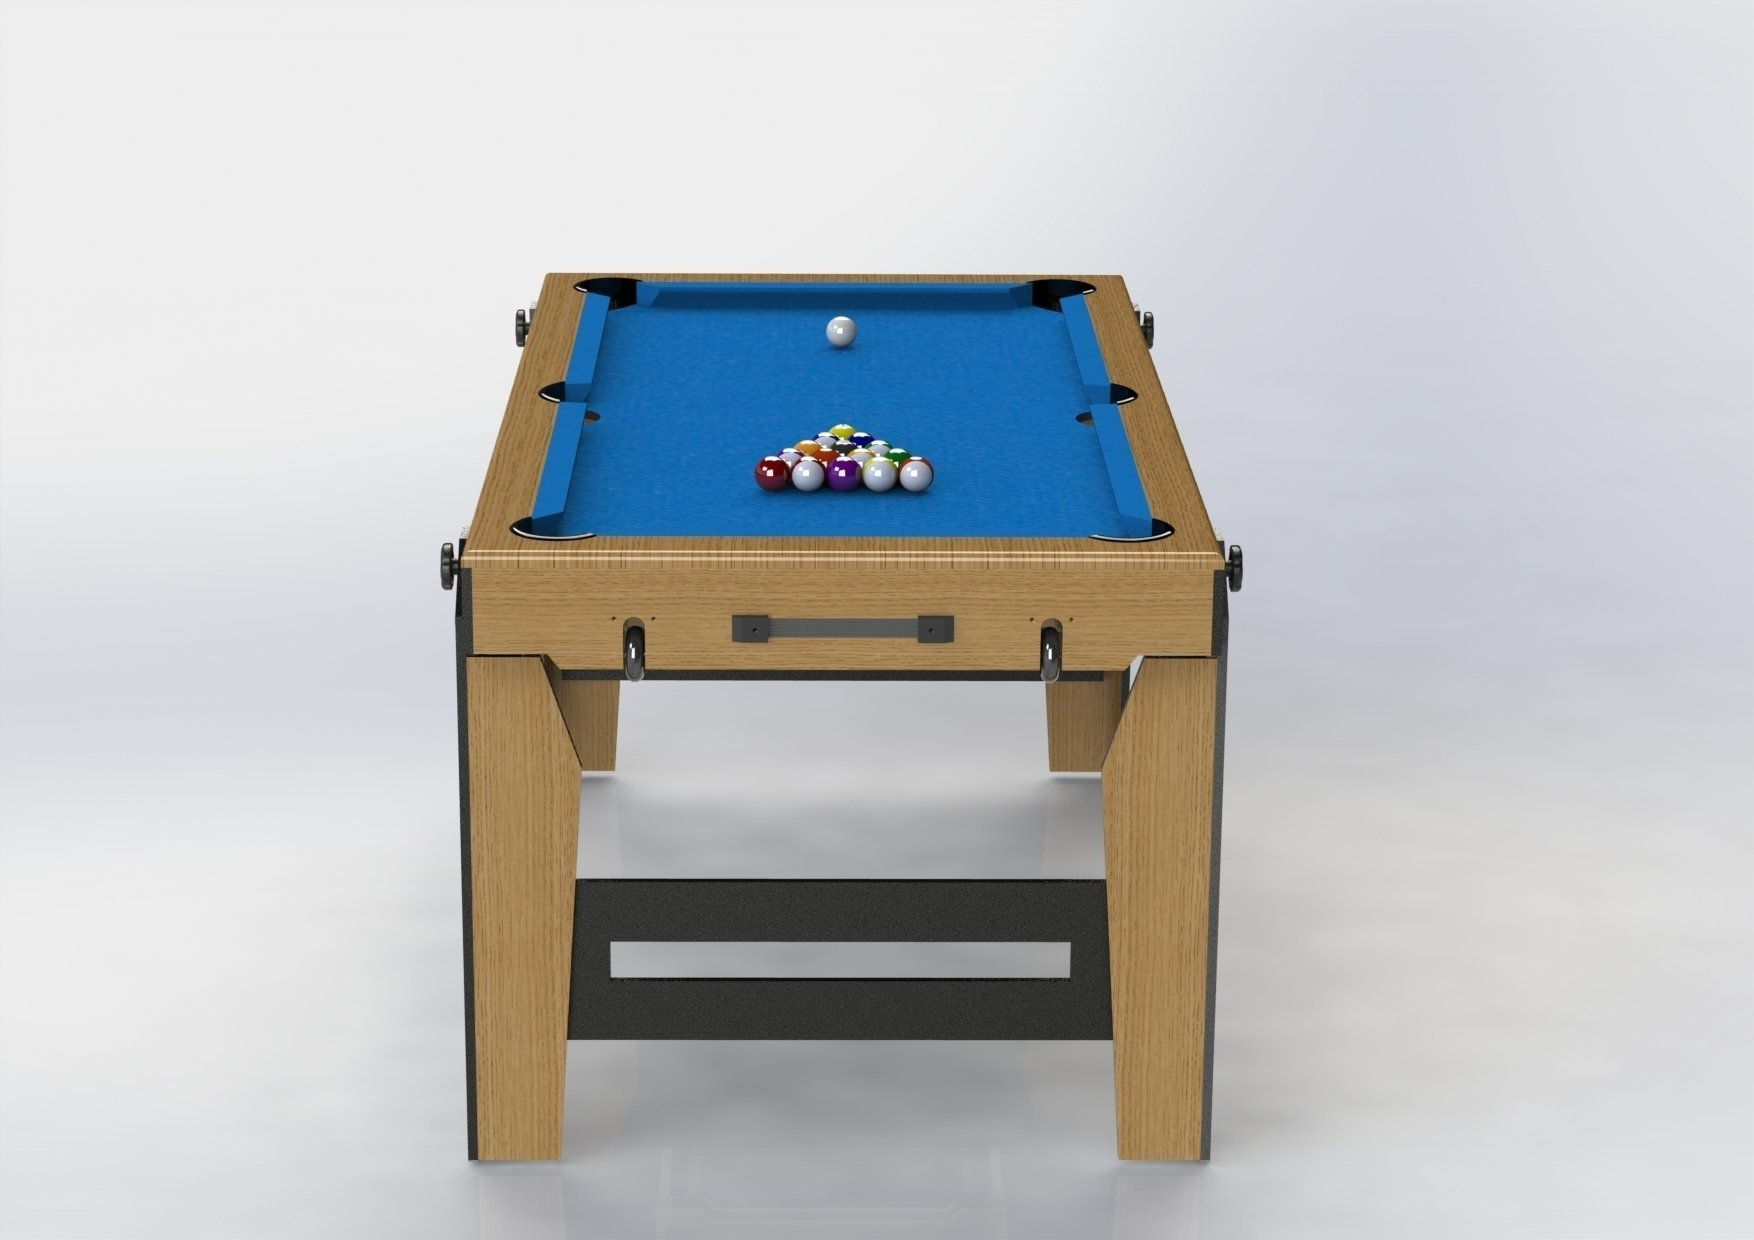 Gardening Advice Garden Design Heritage Plants What To Do In Your - Rolling pool table